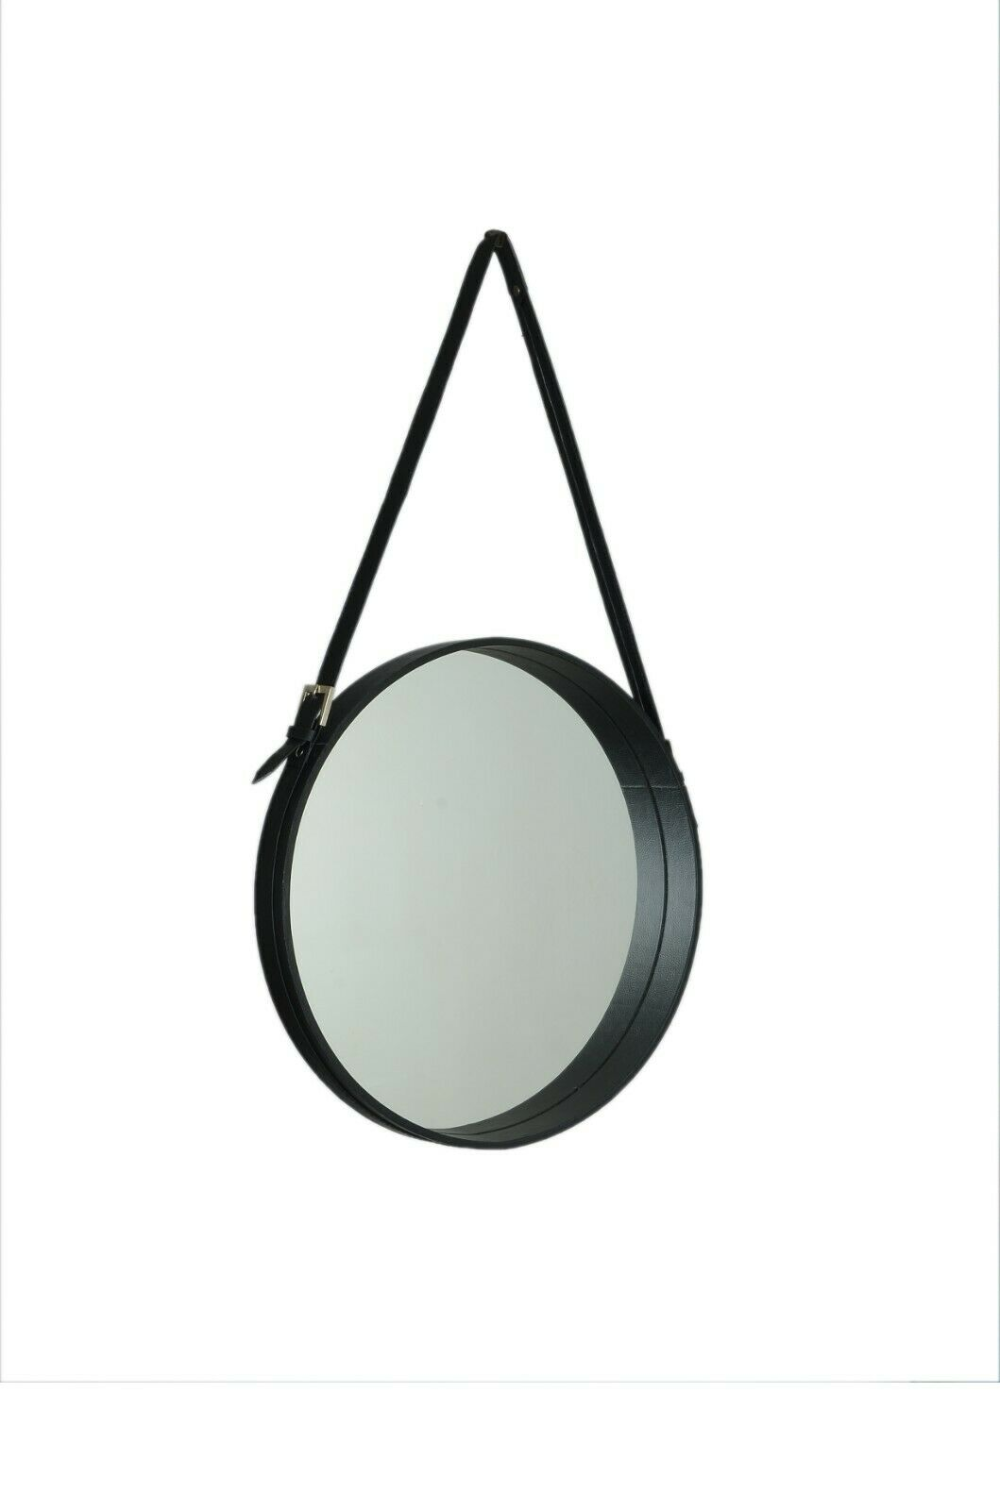 Black Leather Strapped Wall Hanging Round Circular Bathroom Gubi Mirror 15 Ebay Round Decor Mirror Decor Mirror